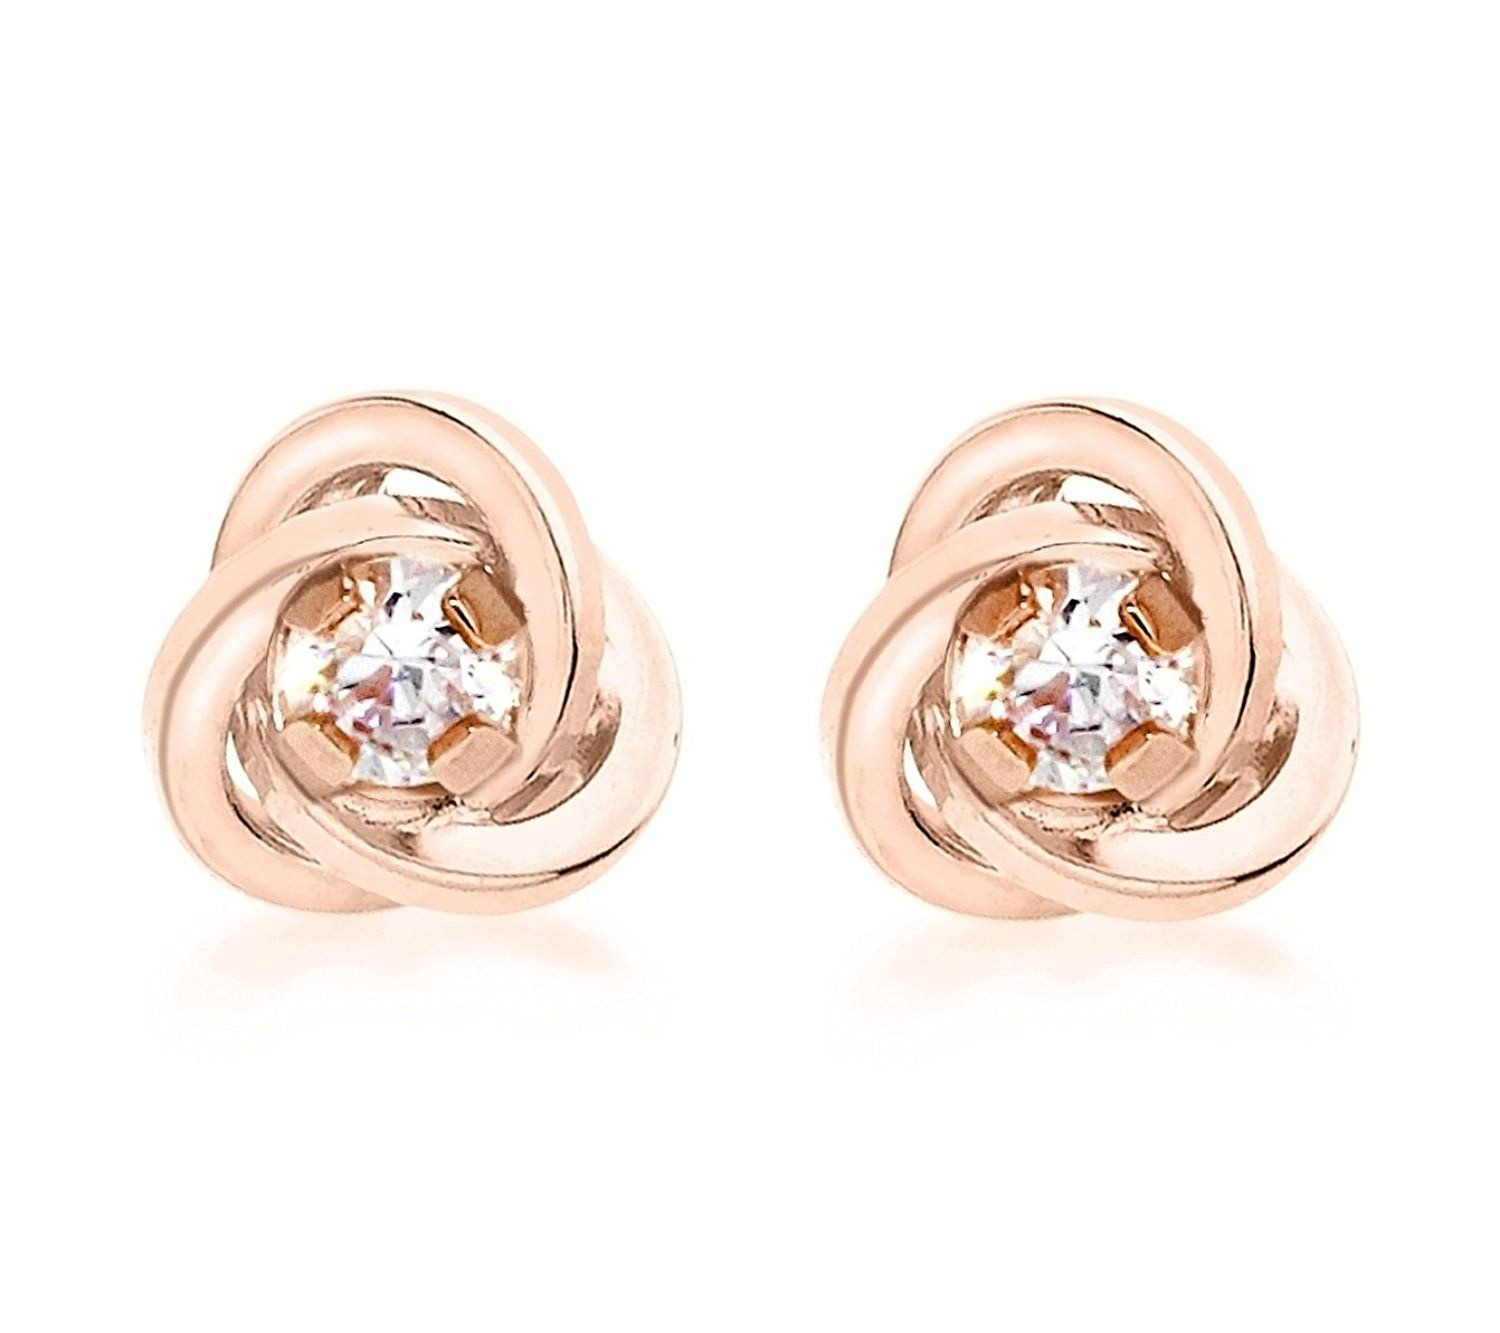 Carissima Gold Women's 9 ct Rose Gold Cubic Zirconia Knot Stud Earrings KgFbH